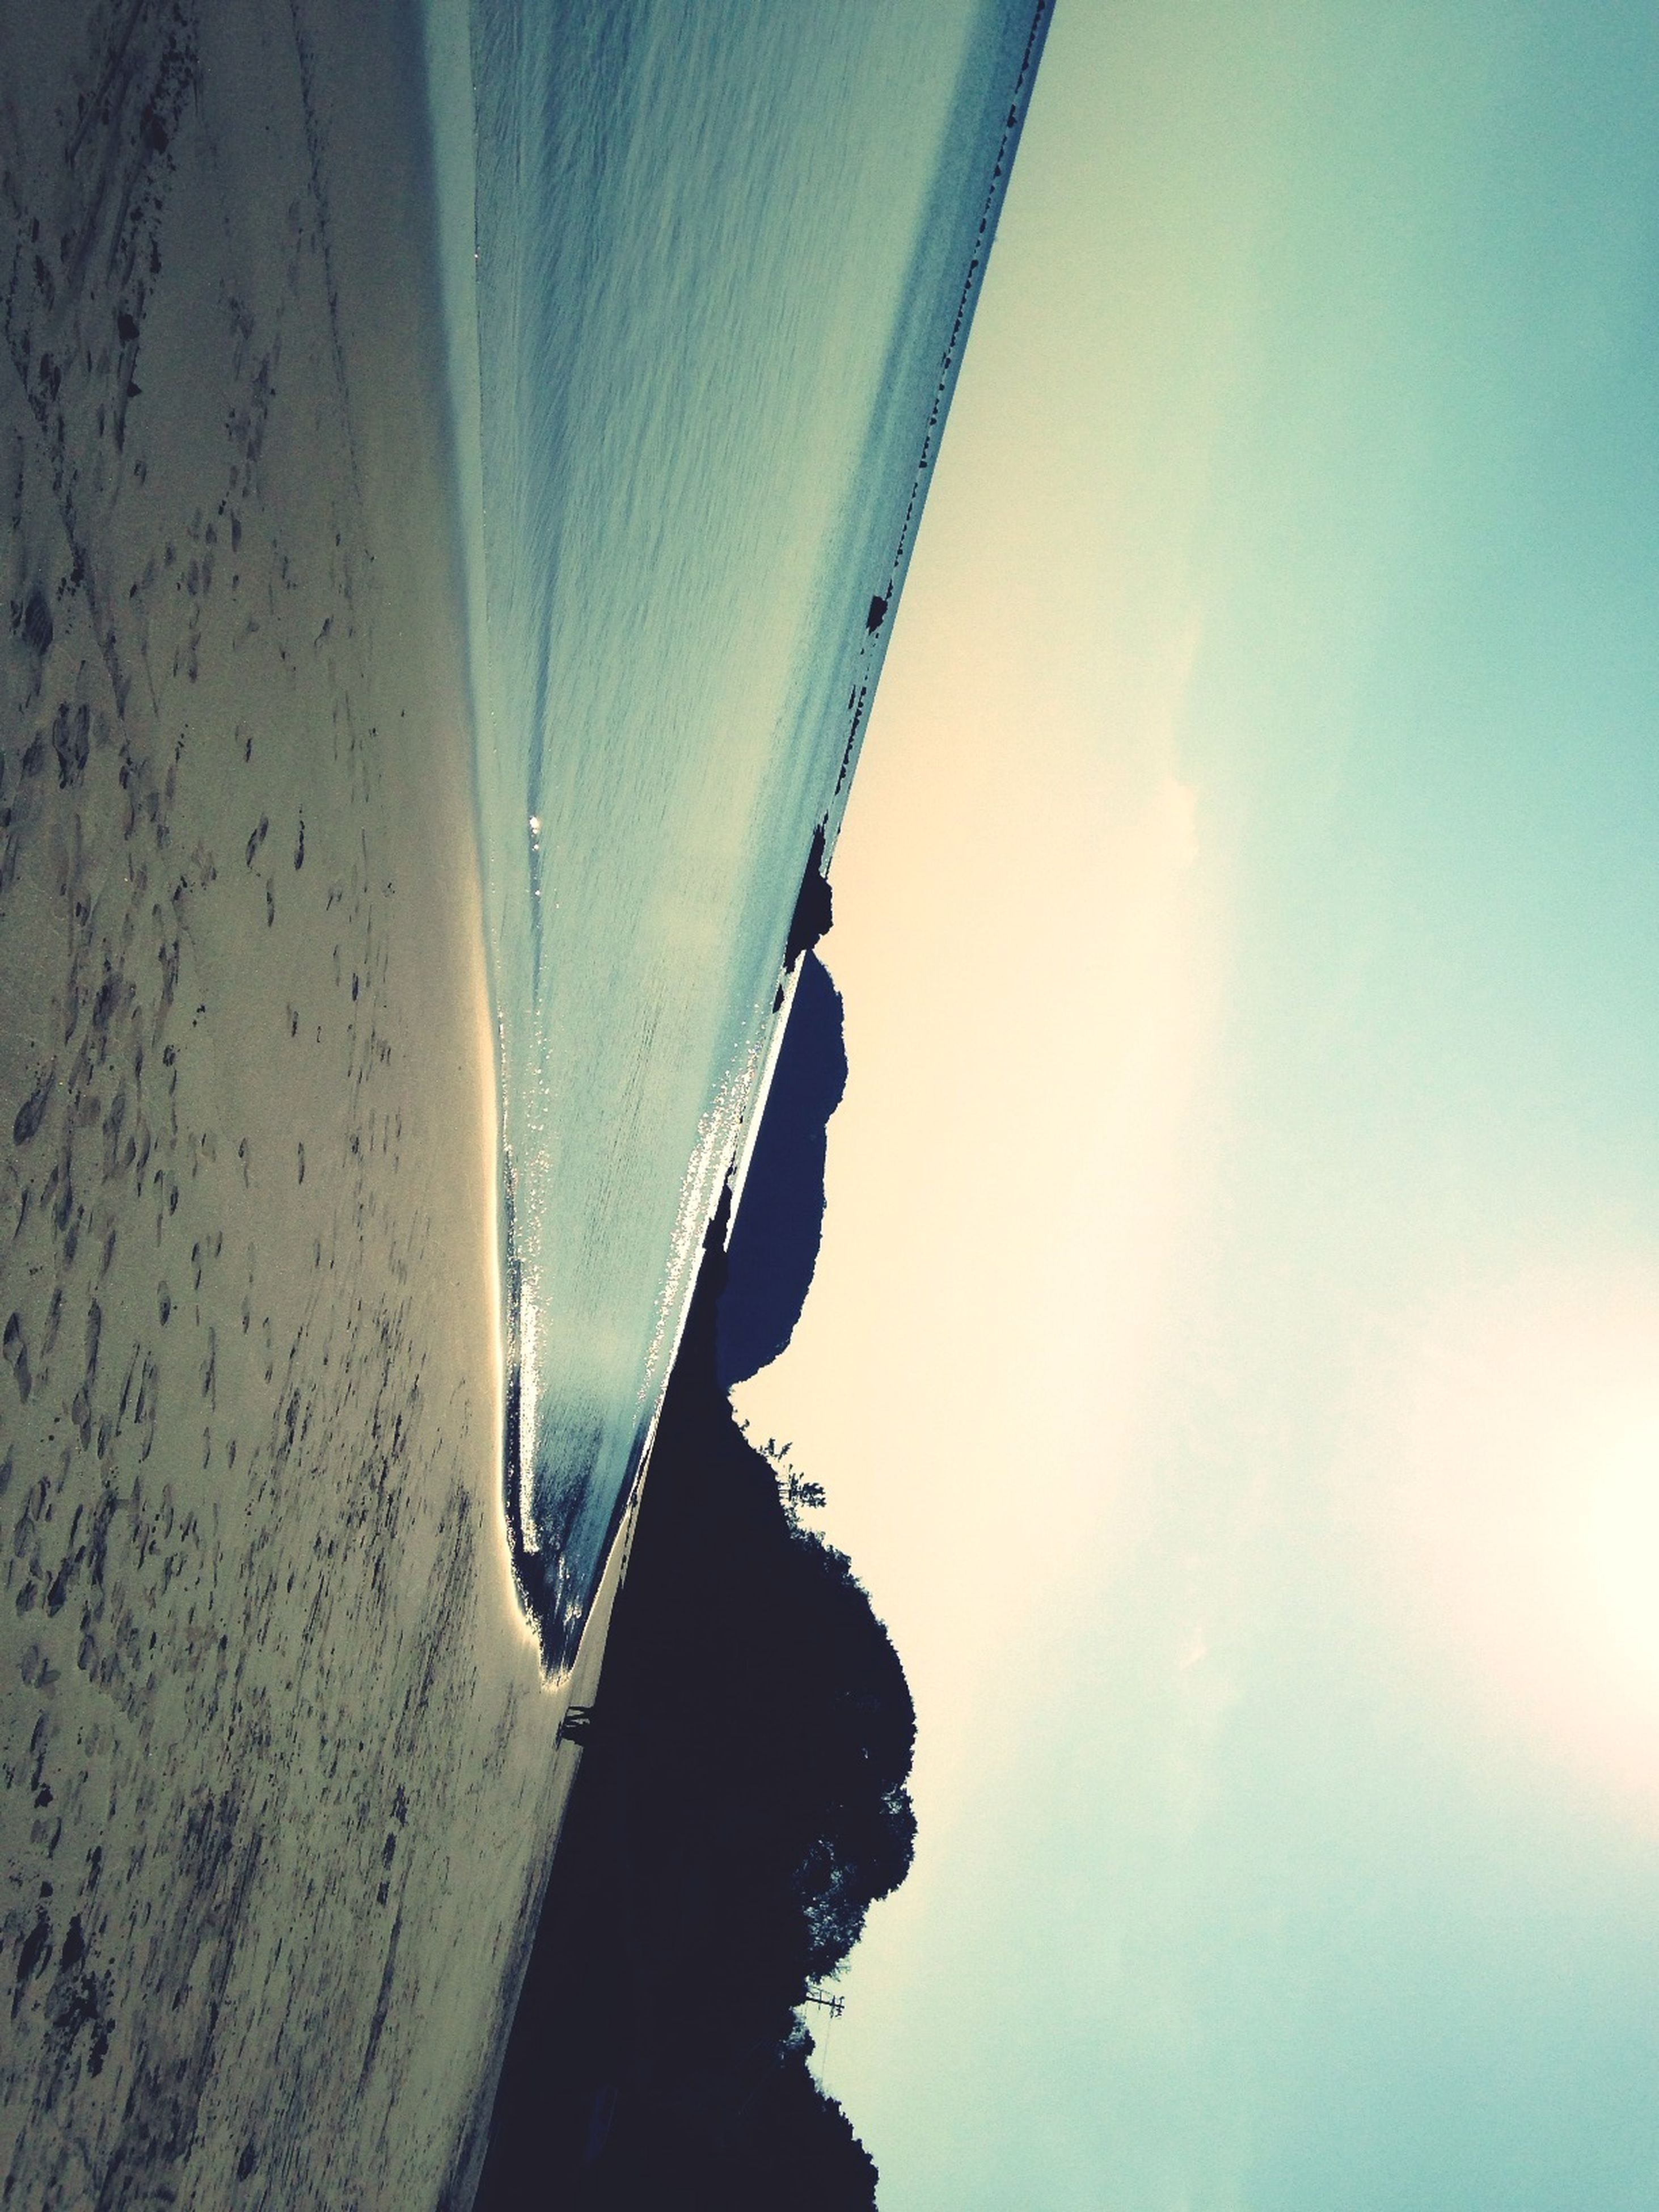 sea, beach, water, scenics, tranquil scene, beauty in nature, tranquility, shore, sand, sky, nature, horizon over water, mountain, coastline, idyllic, wave, vacations, blue, sunlight, surf